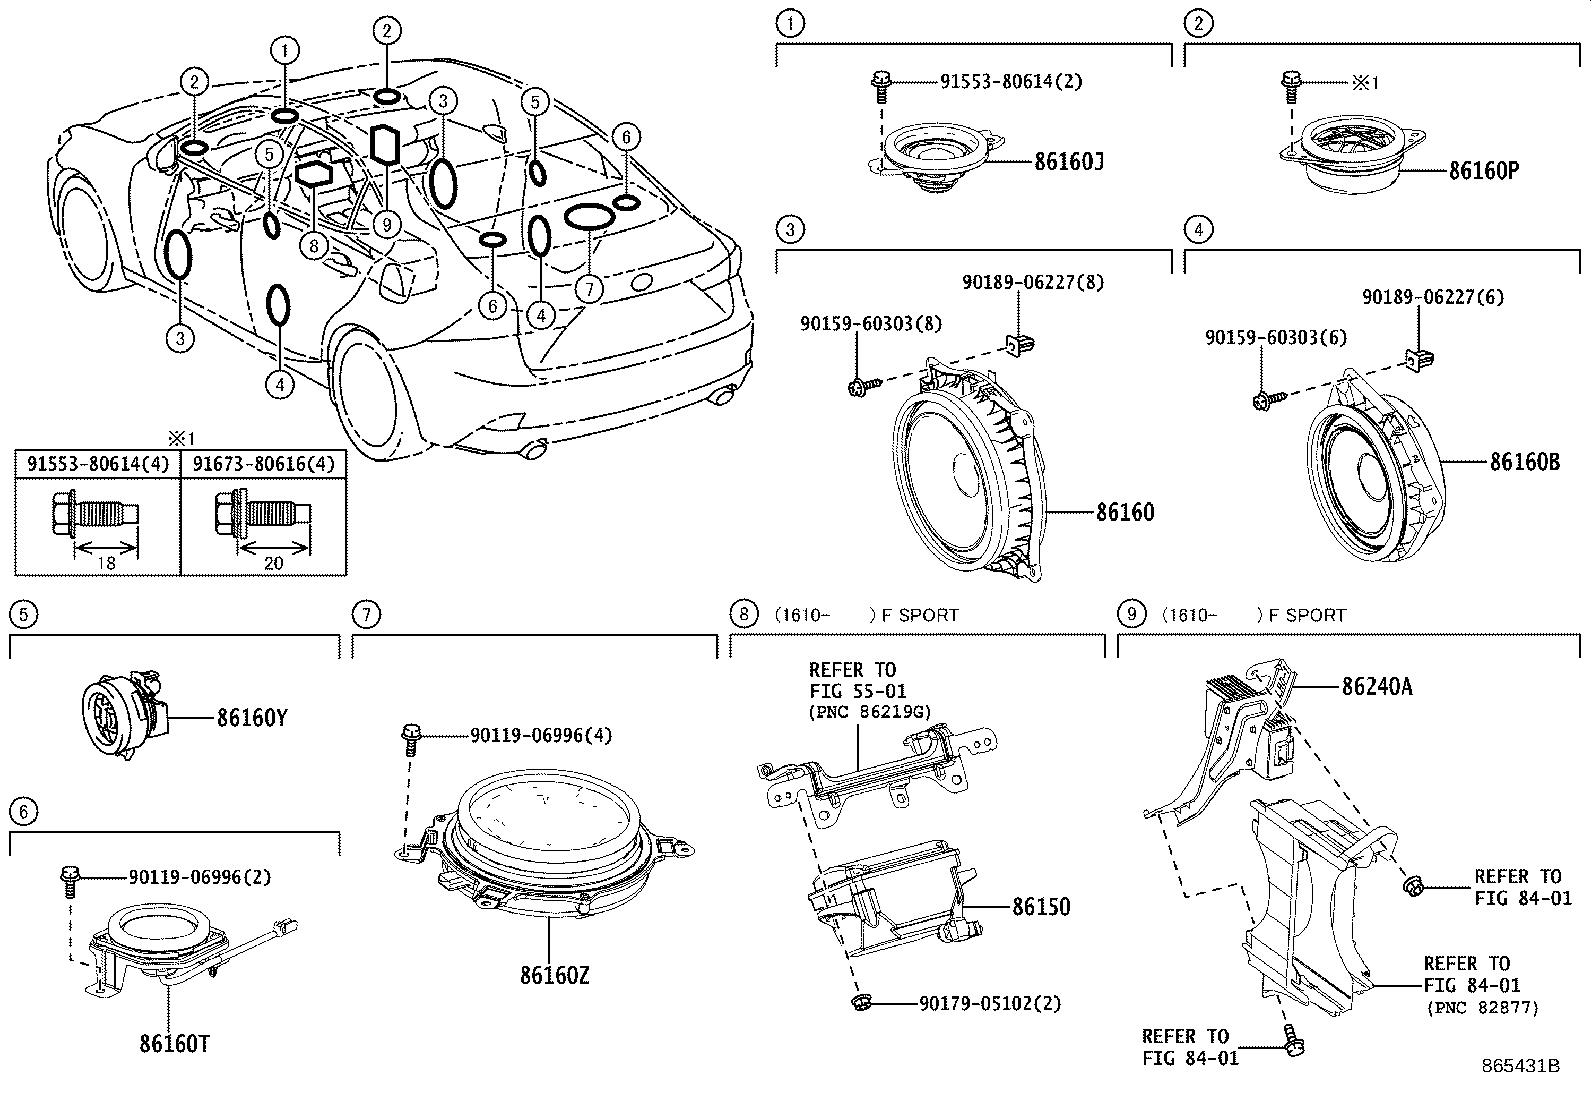 Lexus Is 350 Speaker Assembly Front No 2 Front No 3